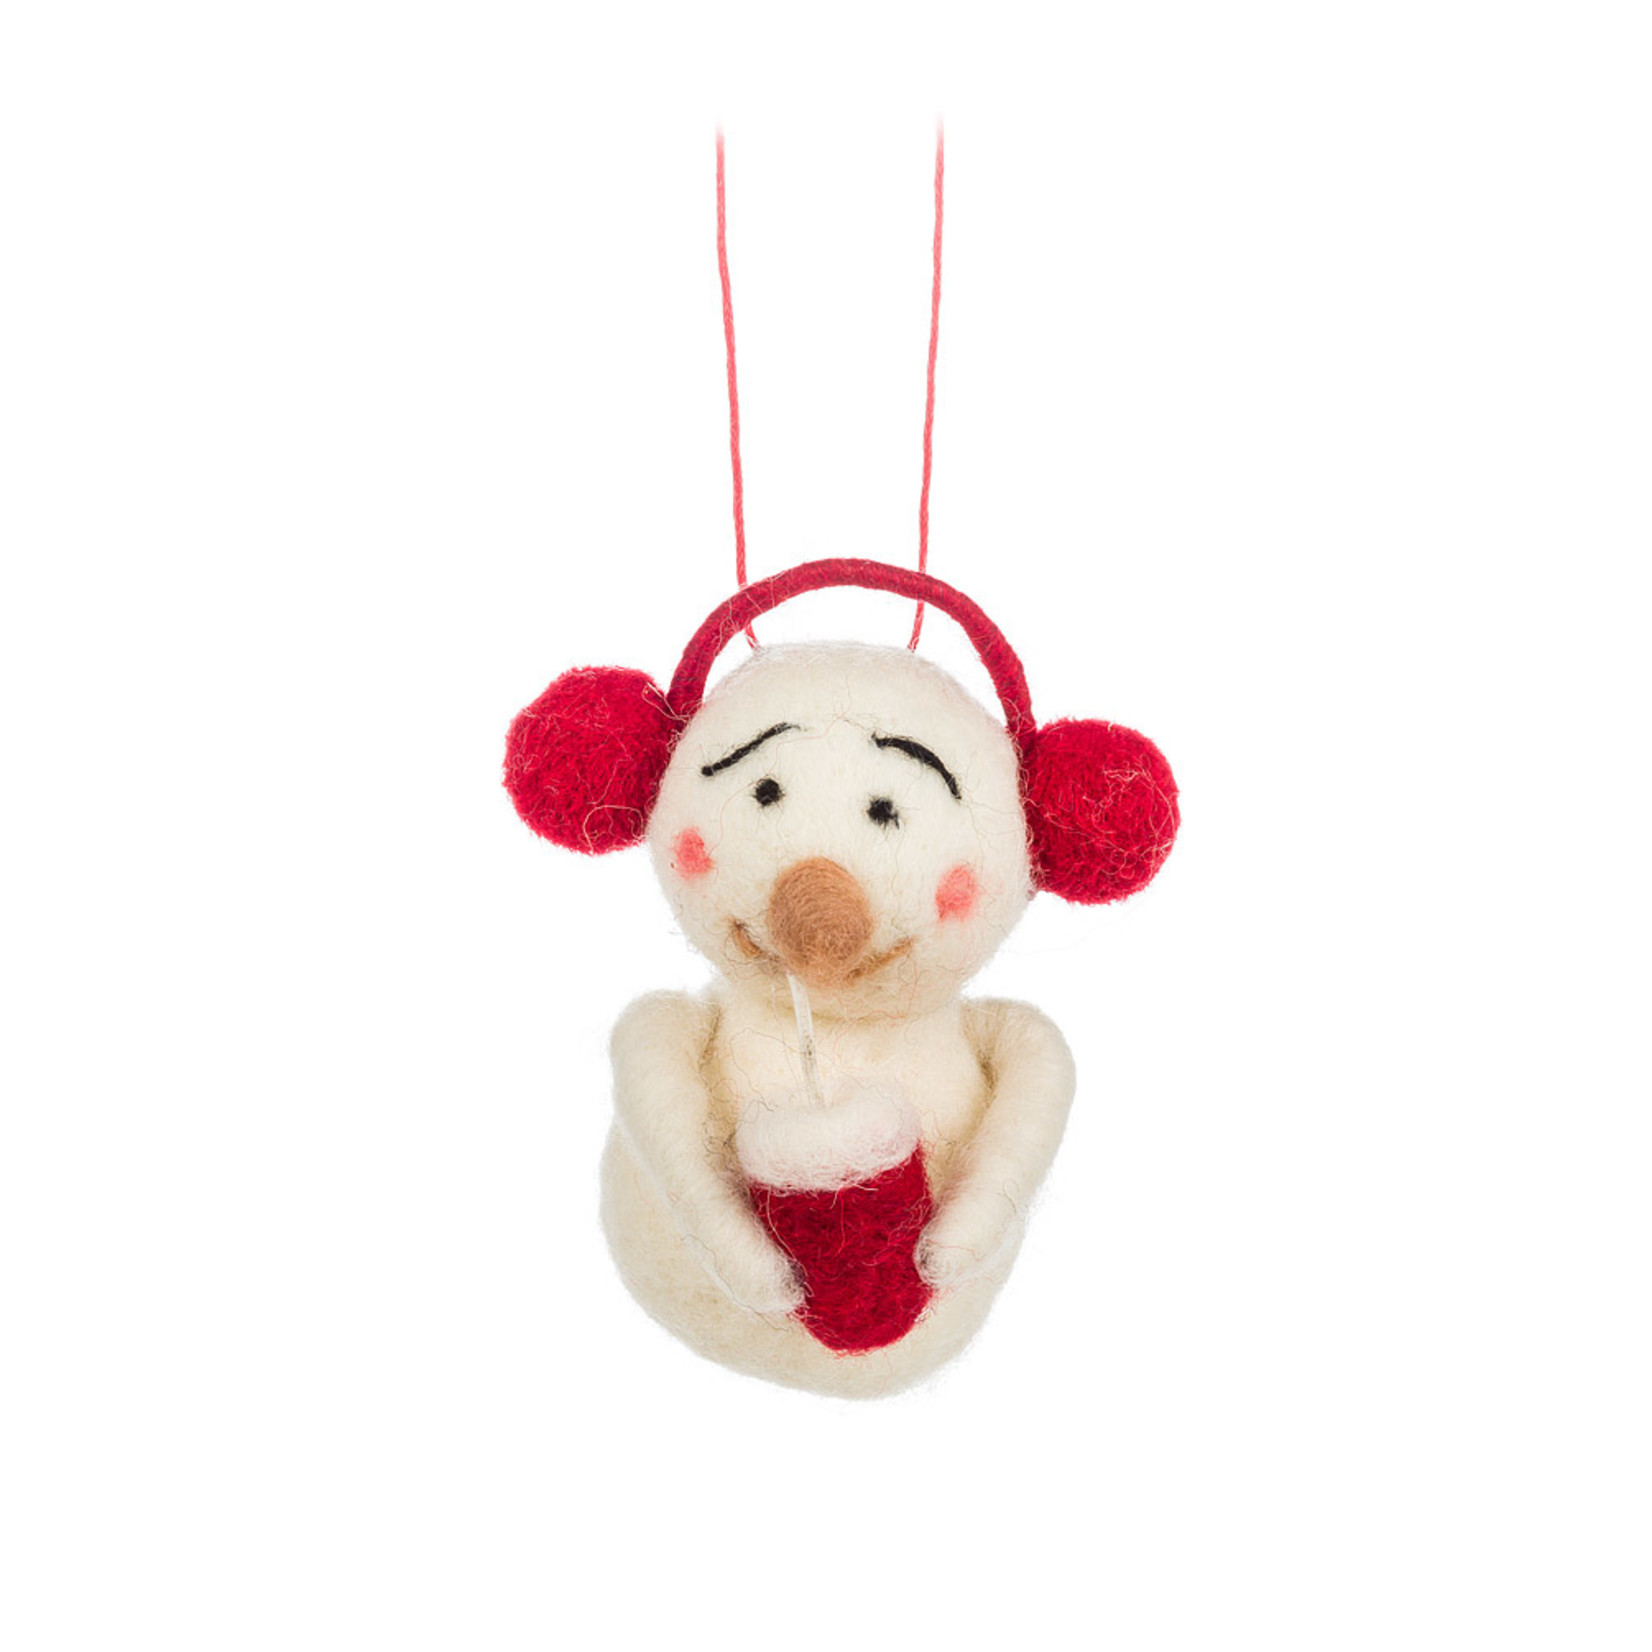 Abbott Felted Earmuff Snowman with Cup Ornament